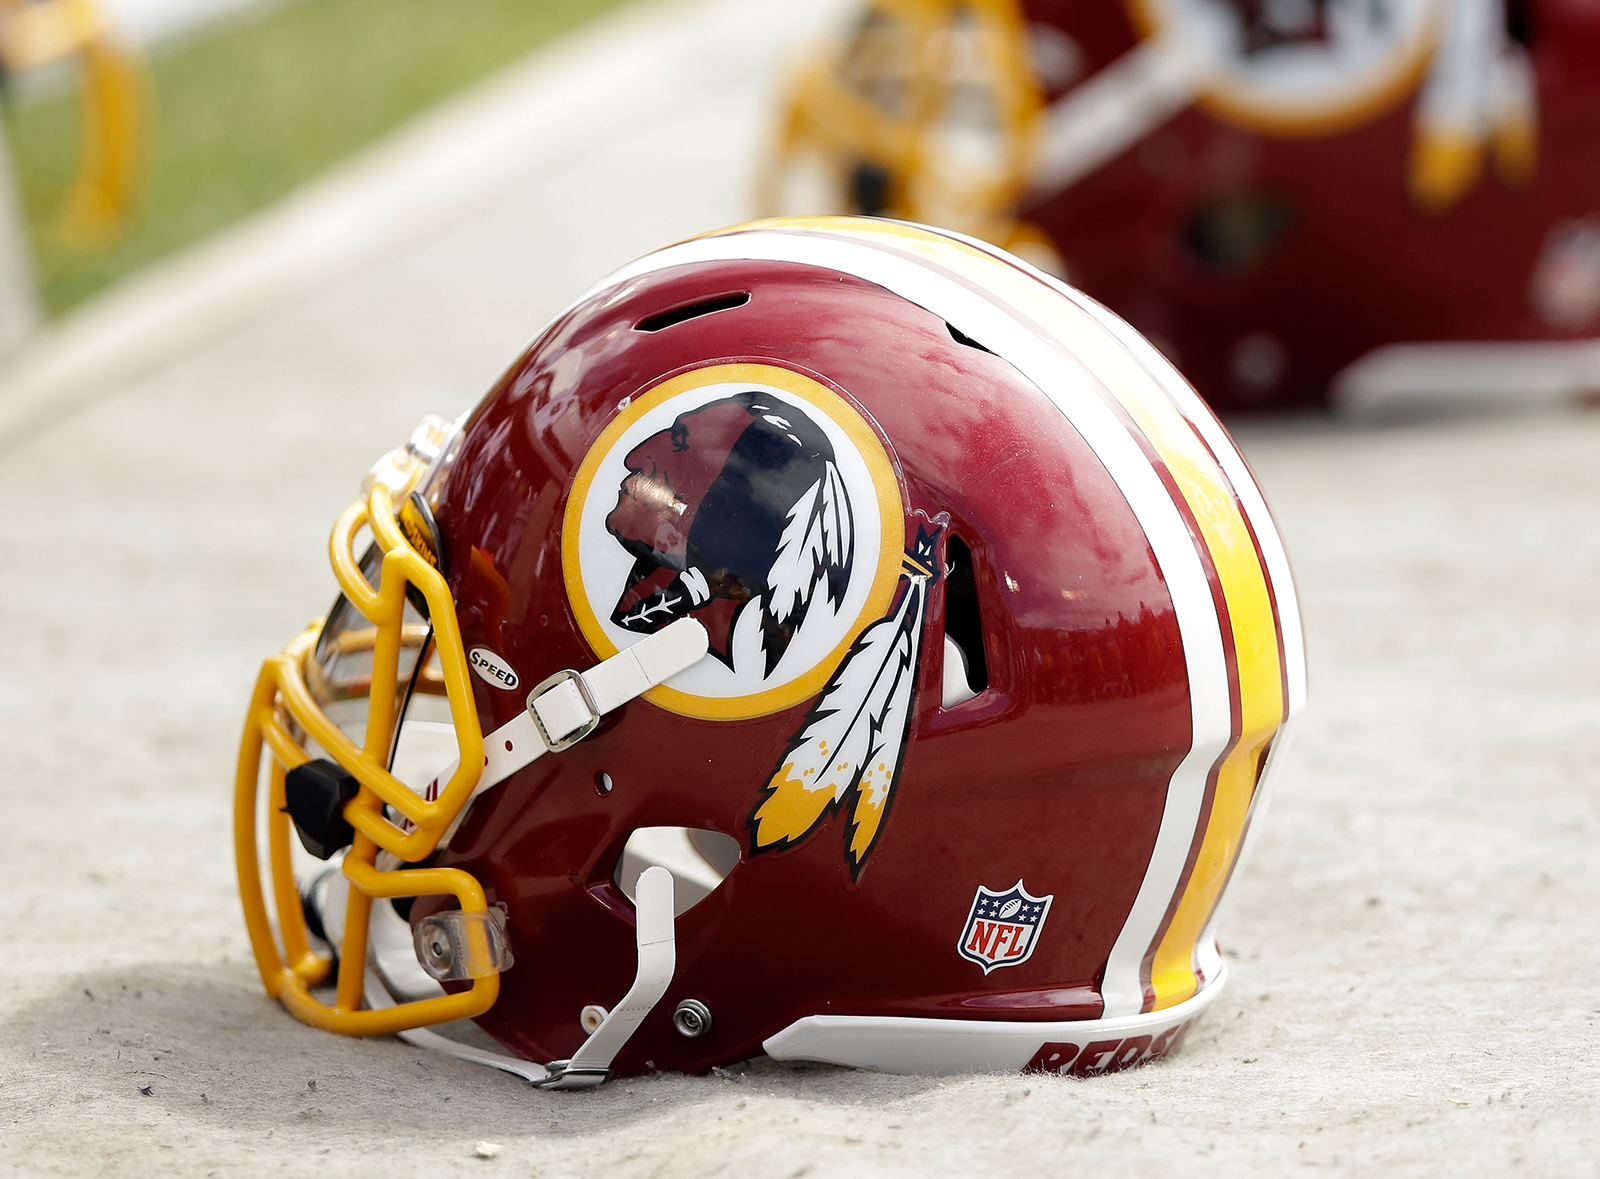 Minority owners of the Washington Redskins are attempting to sell, reports say